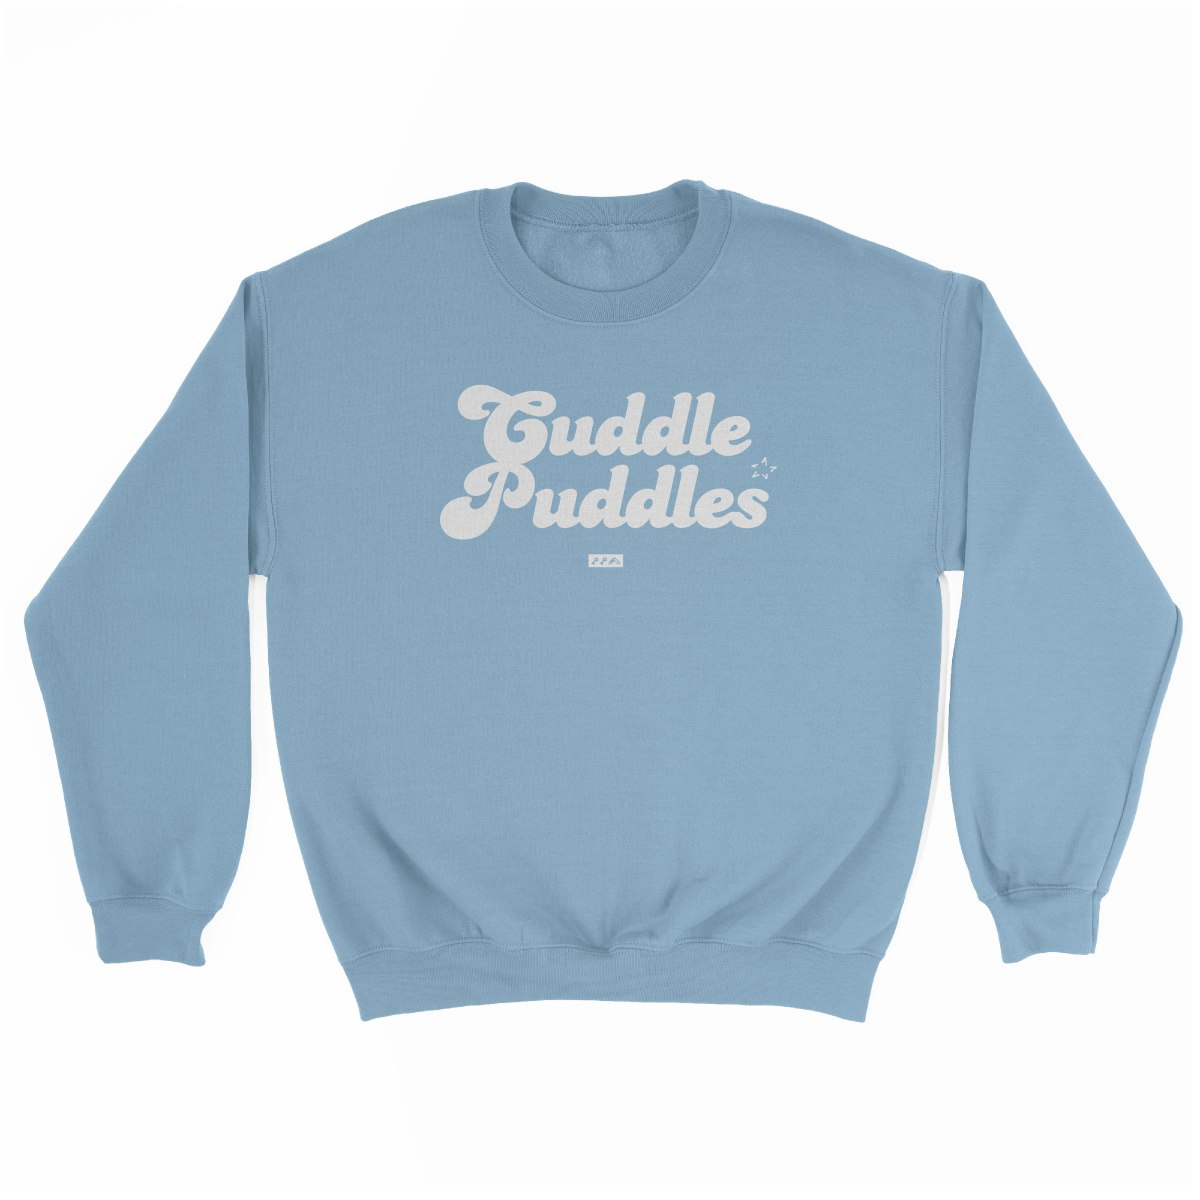 CUDDLE PUDDLE PARTY comfy sweatshirt in light blue at kikicutt.com